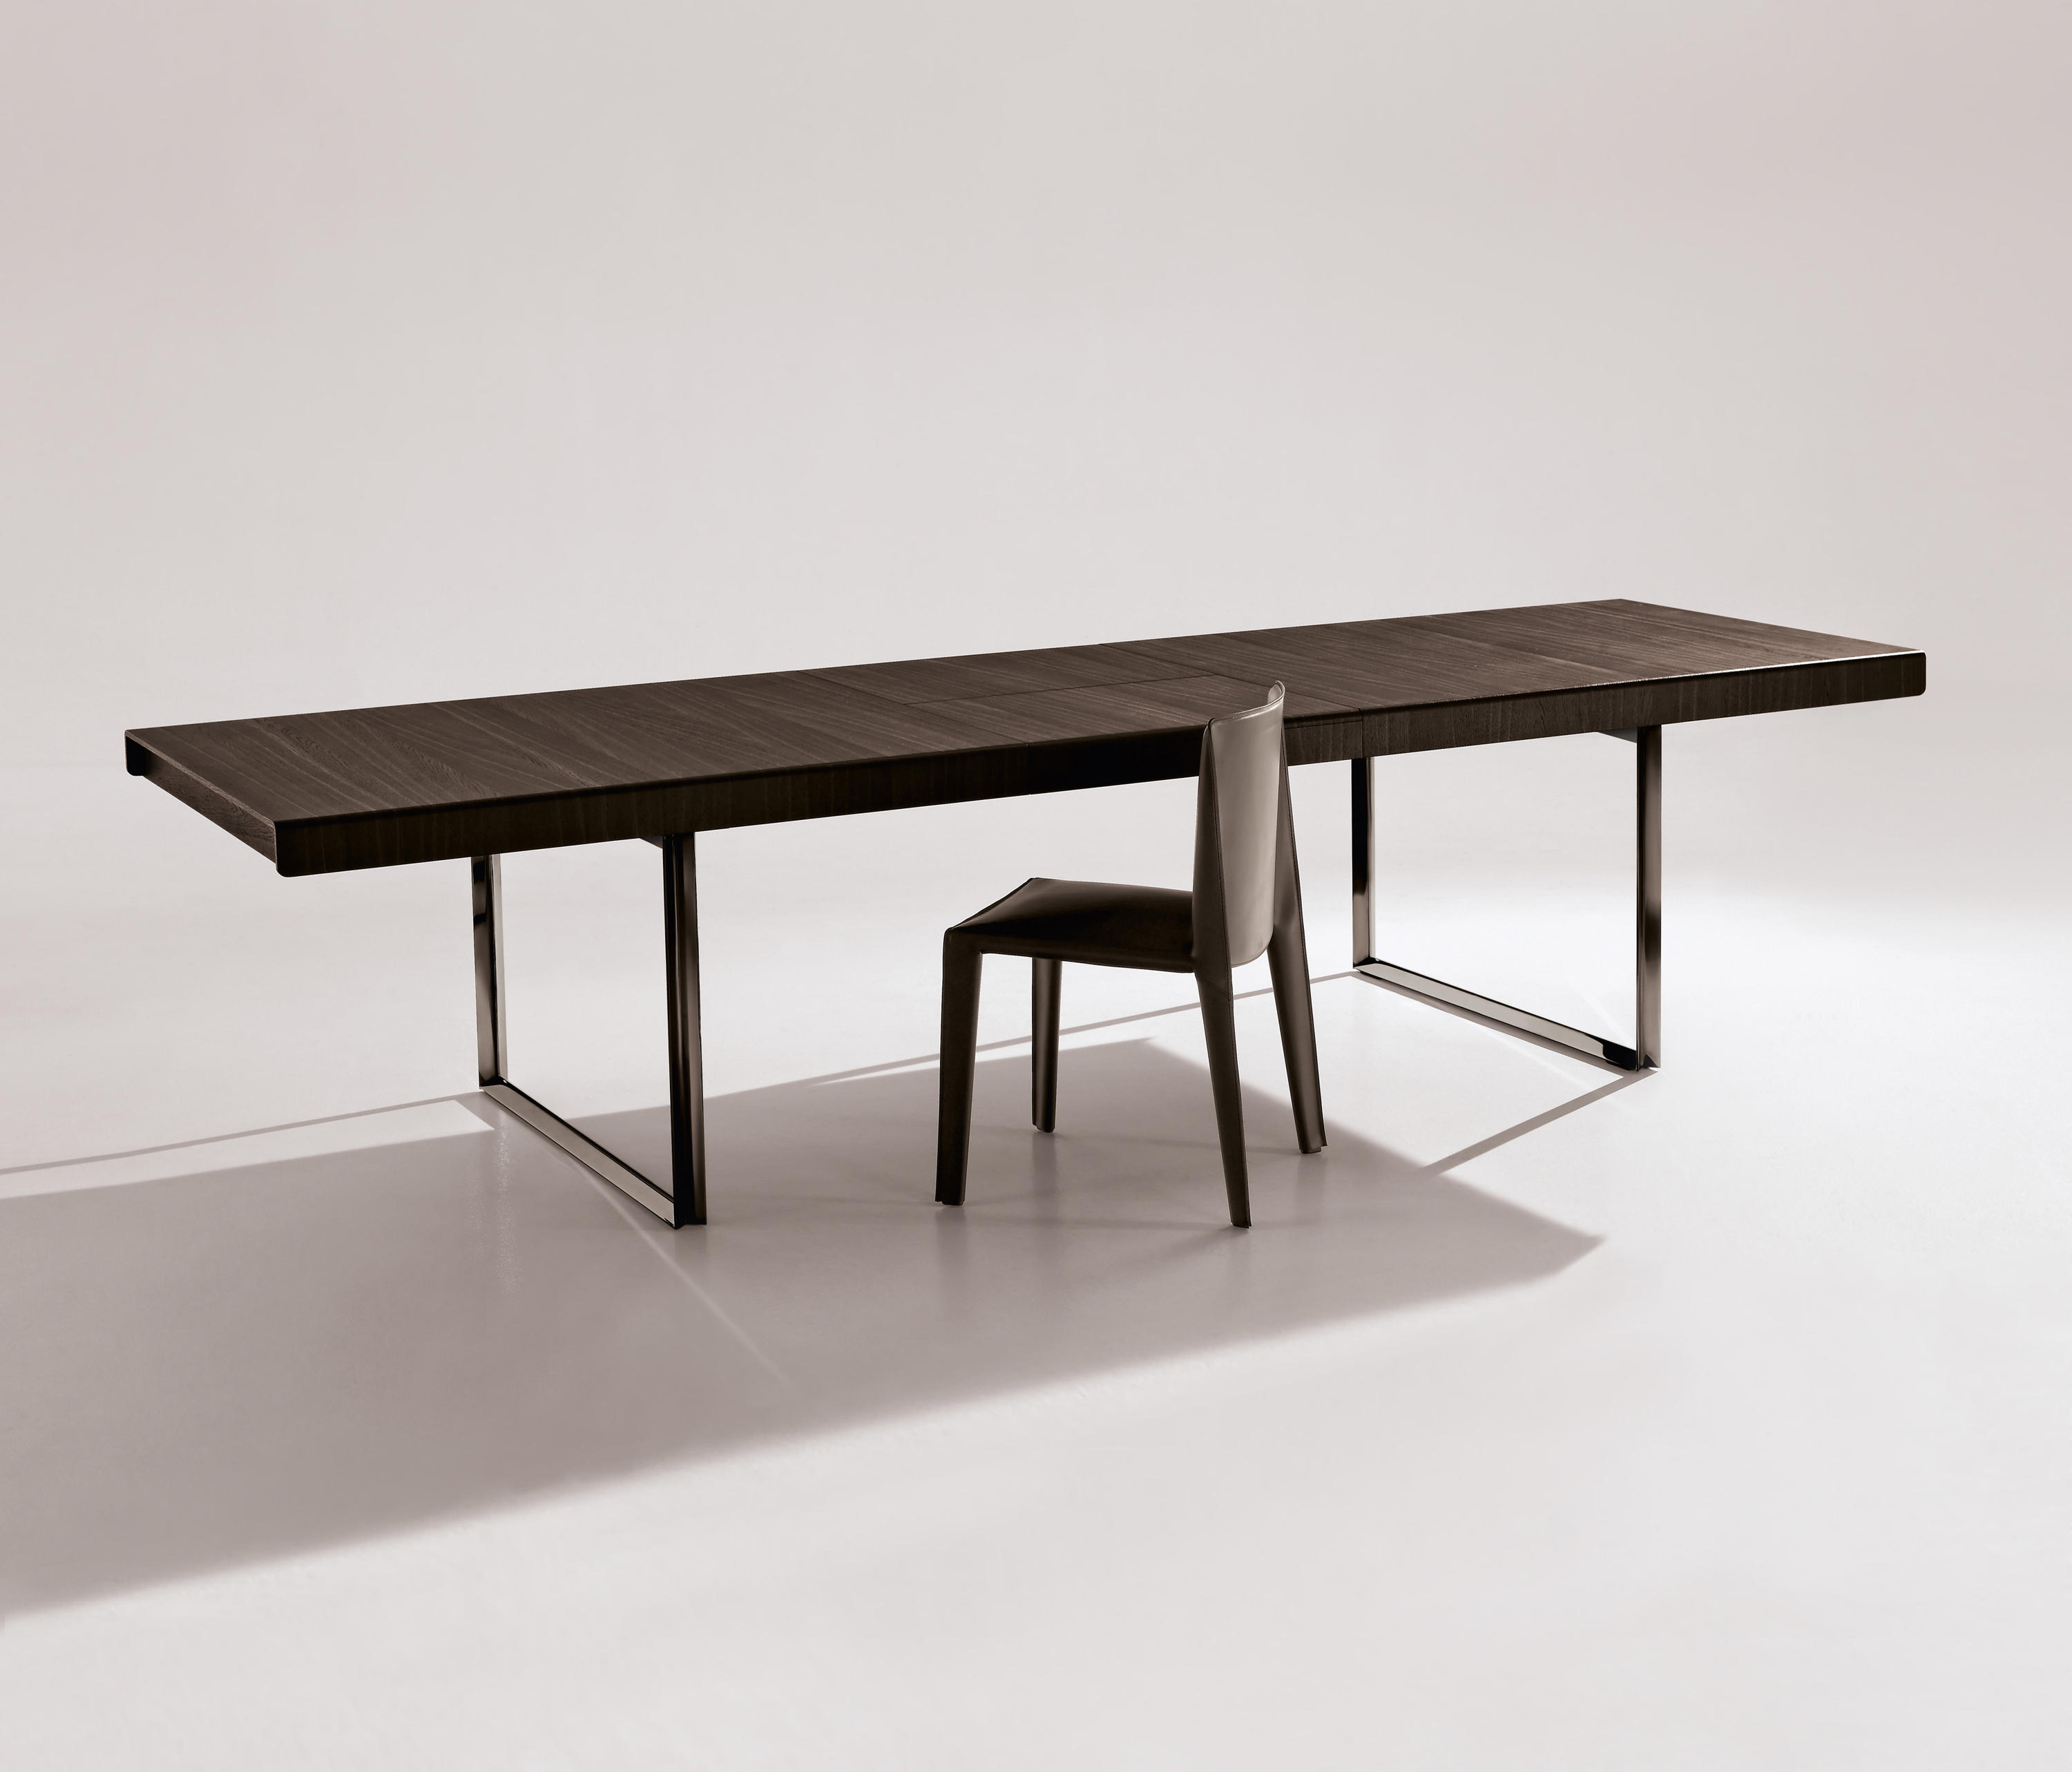 Athos 12 dining tables from b b italia architonic - B b italia athos dining table ...